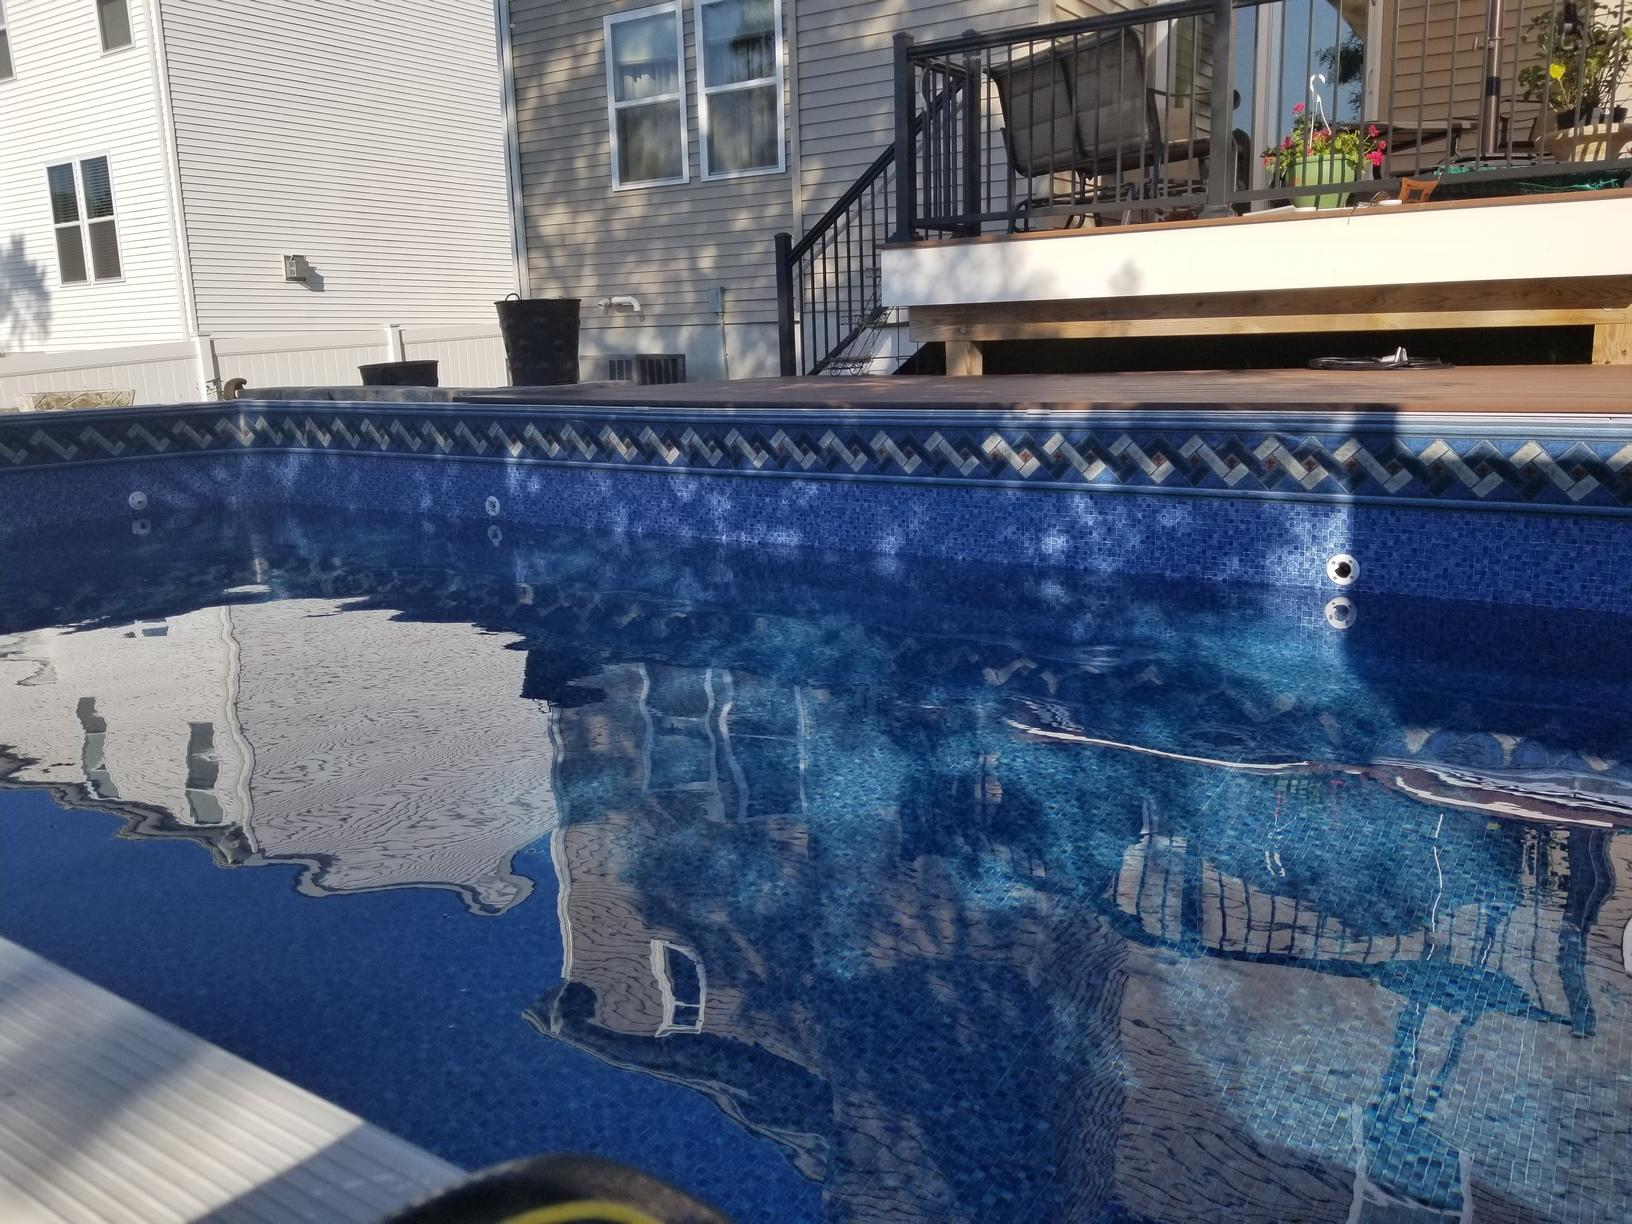 On Ground Radiant Pool Installation in Beachwood, NJ - After Photo